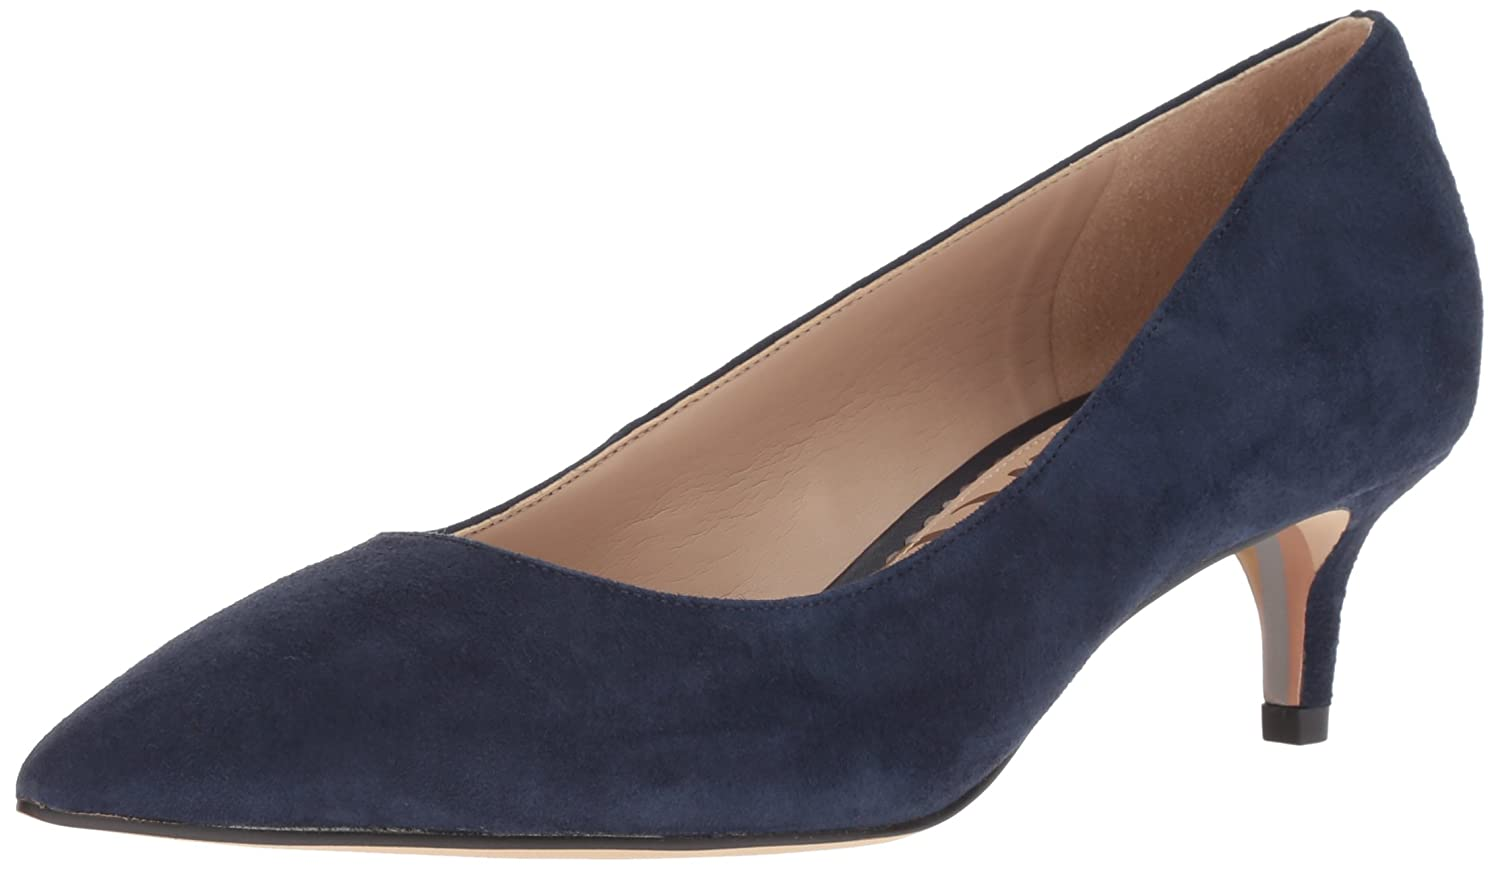 Sam Edelman Women's Dori Pump B07BR7XJQL 6.5 W US|Baltic Navy Suede